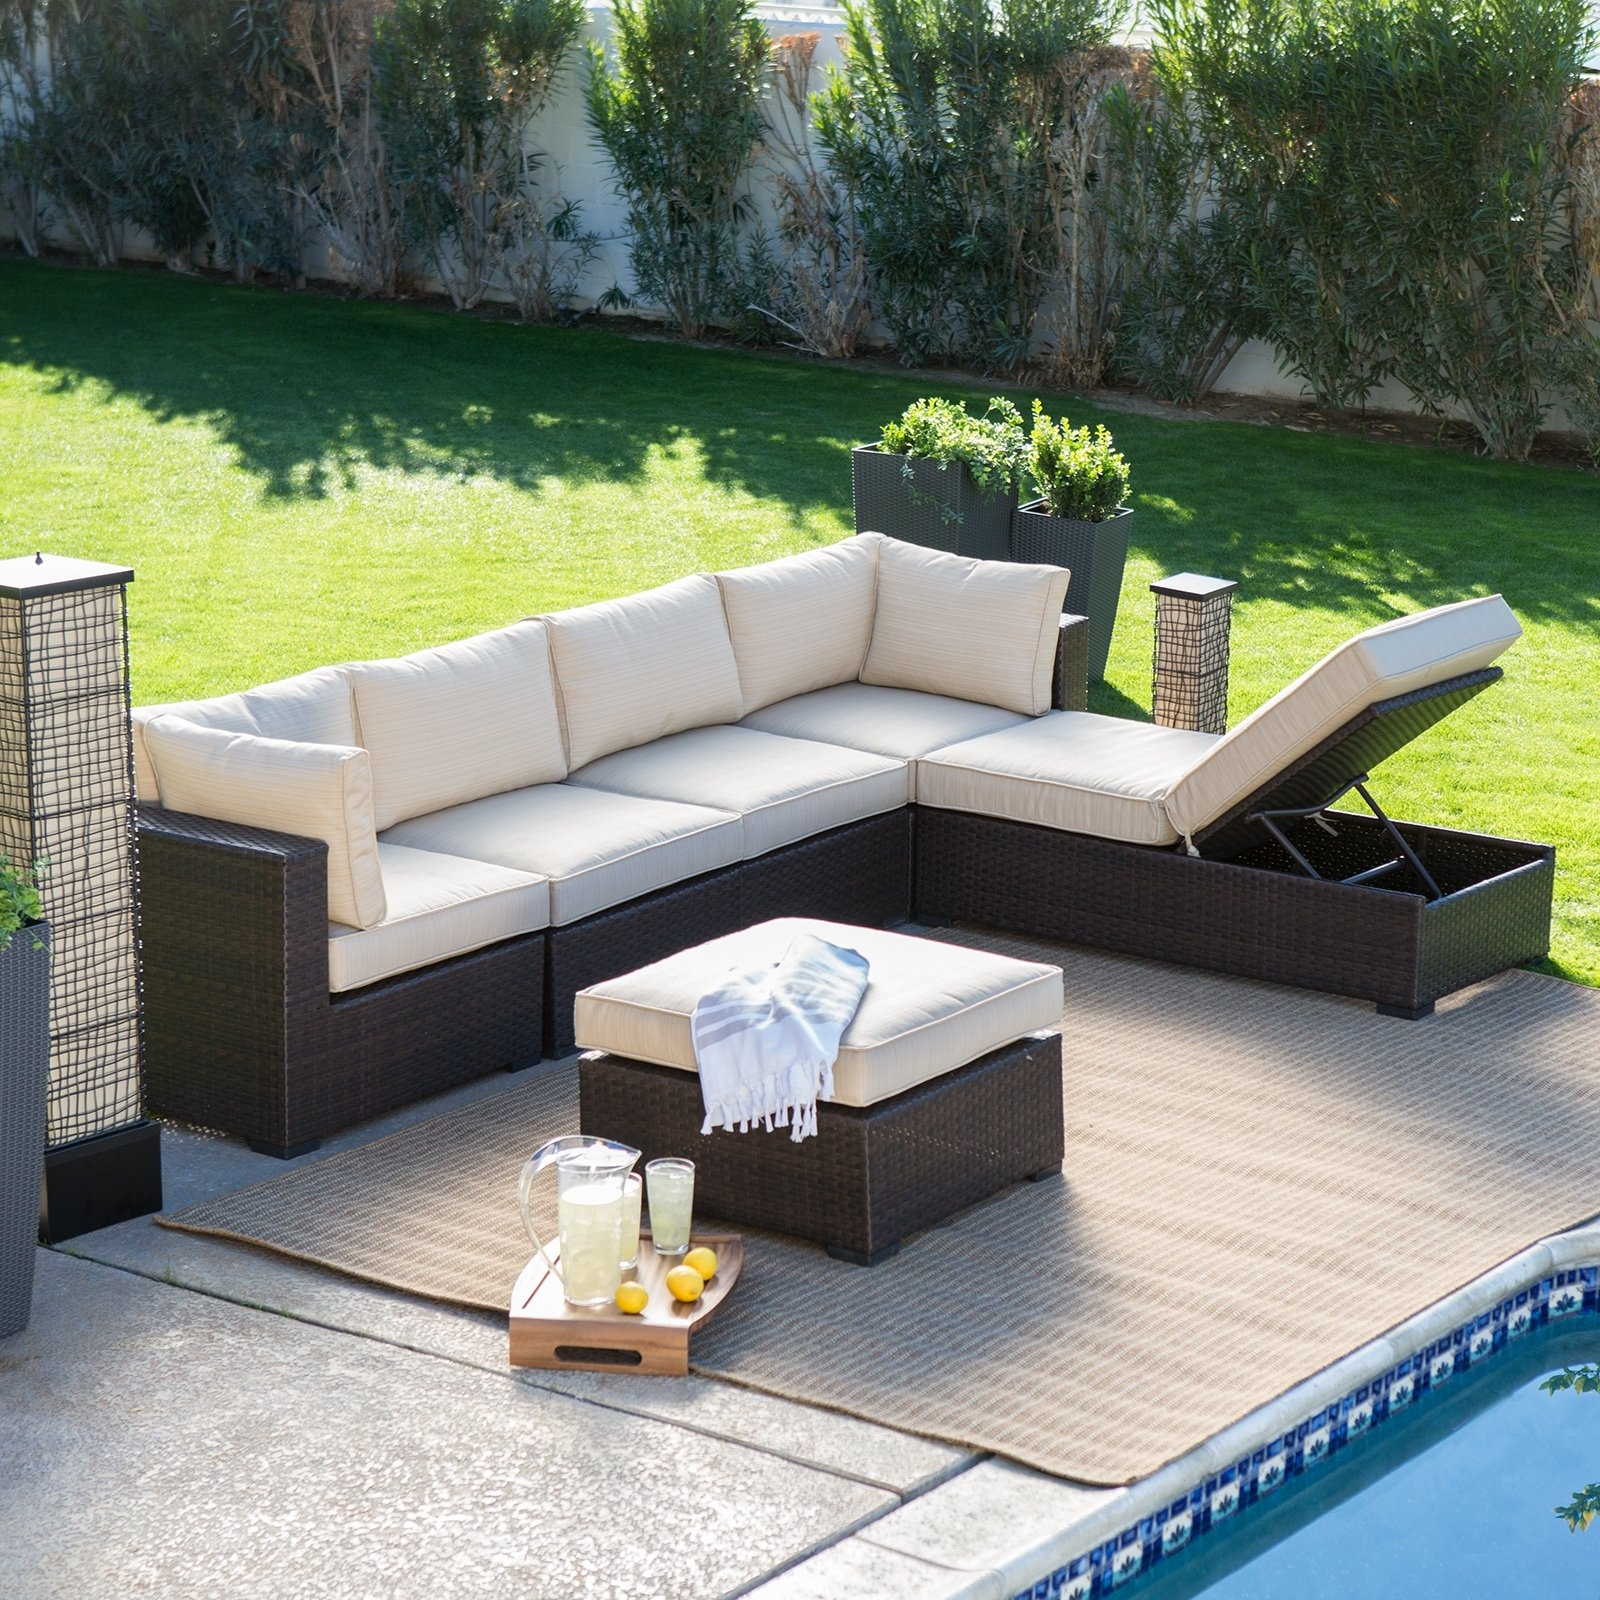 Conversation Patio Sets With Outdoor Sectionals For Well Known Patio : Outdoor Dining Sets Walmart Design Of Outdoor Patio Table (View 5 of 20)